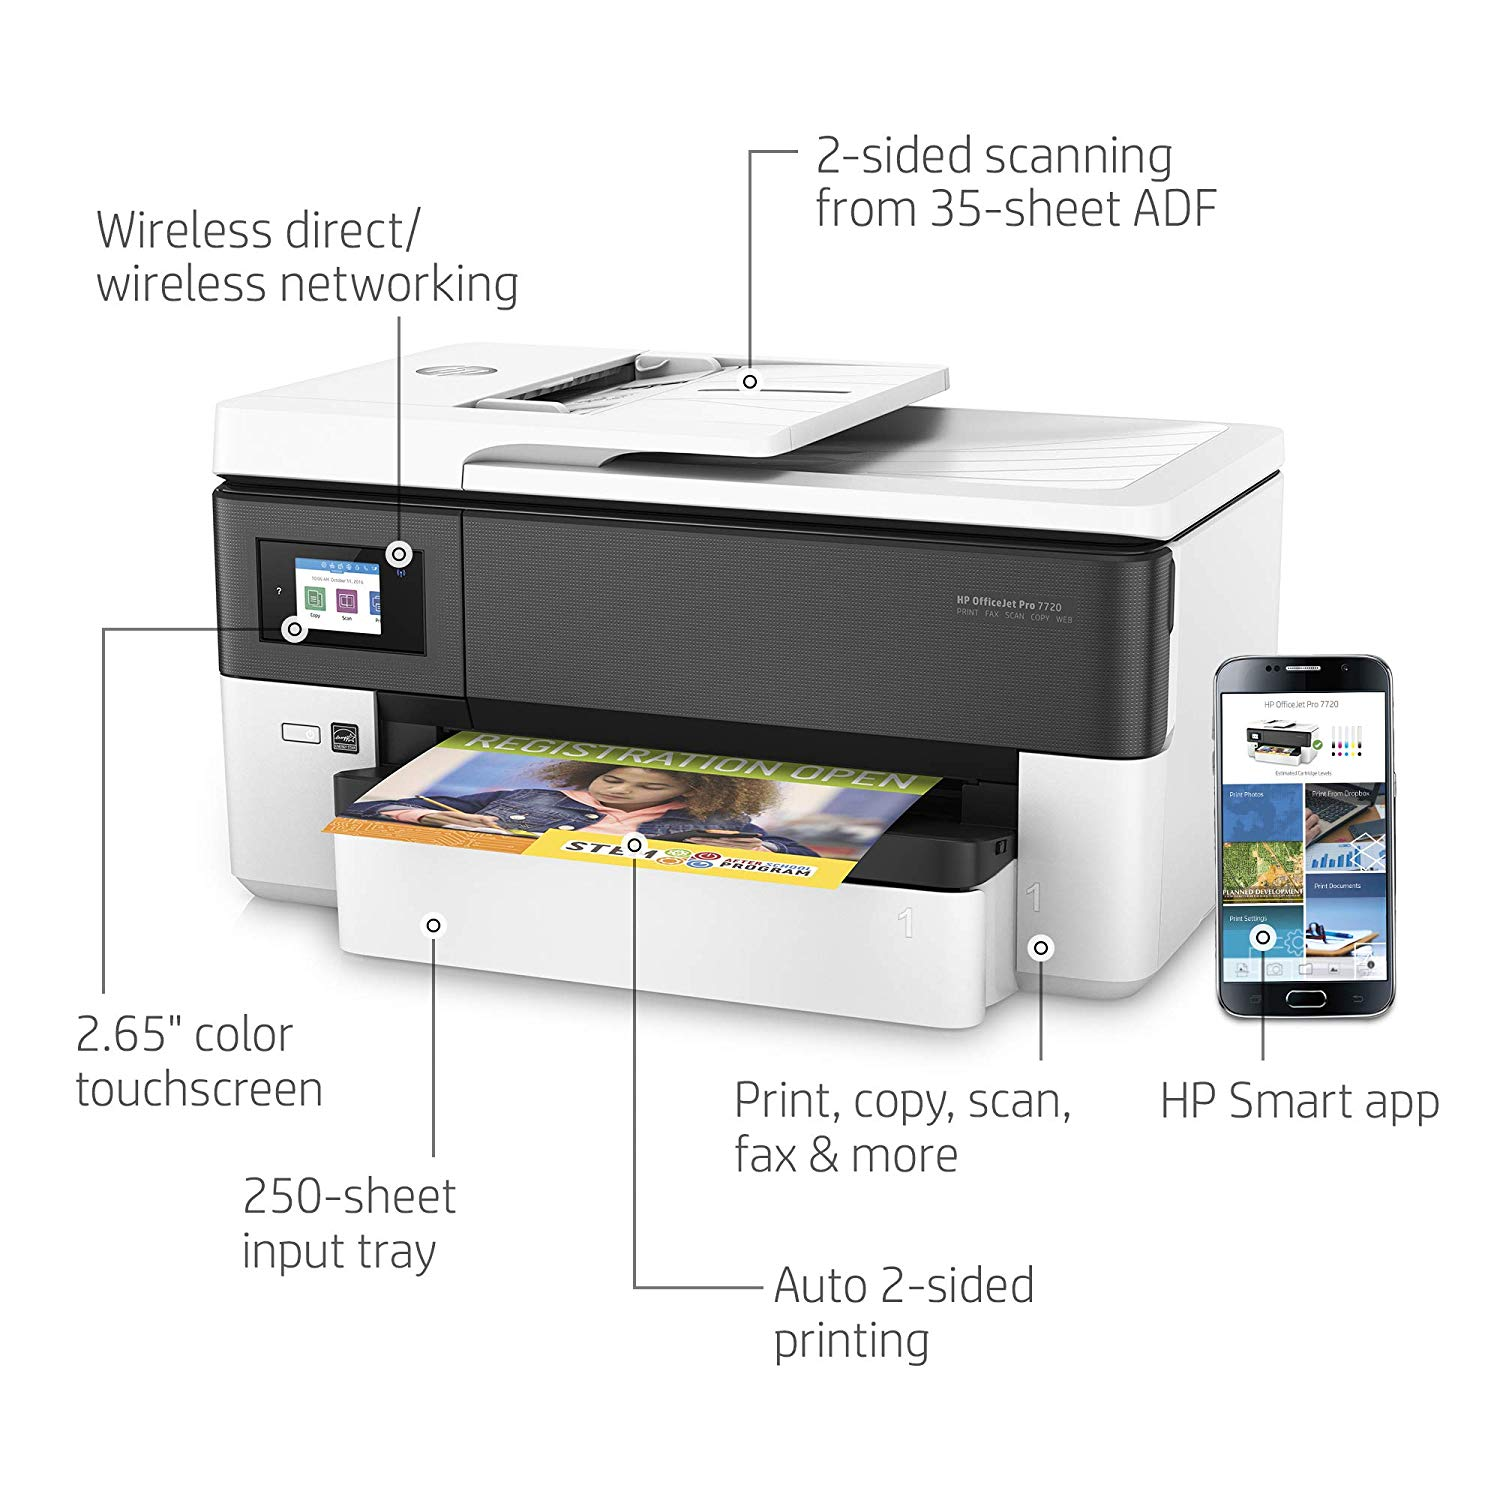 HP Officejet Pro 7720 Wide Format MFP Y0S18A